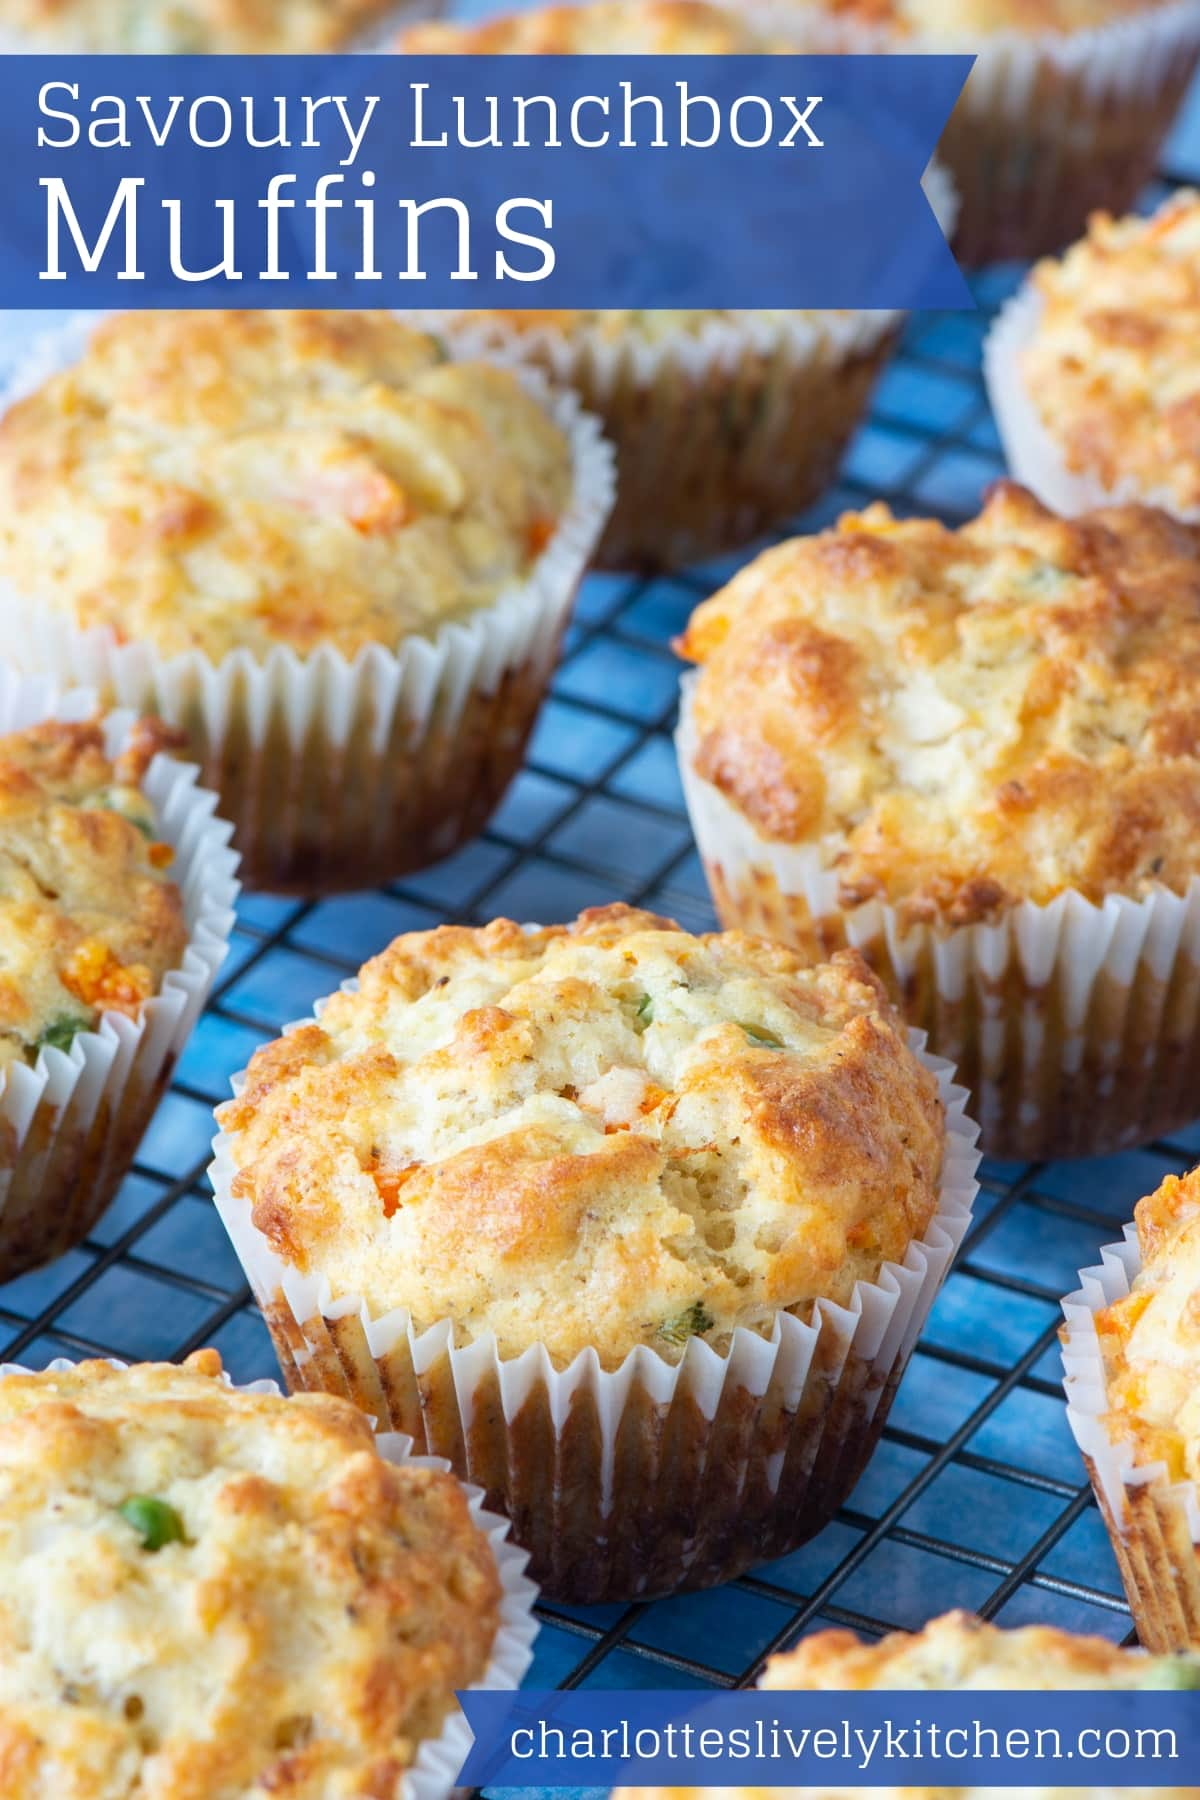 Savoury lunchbox muffins pinnable image.